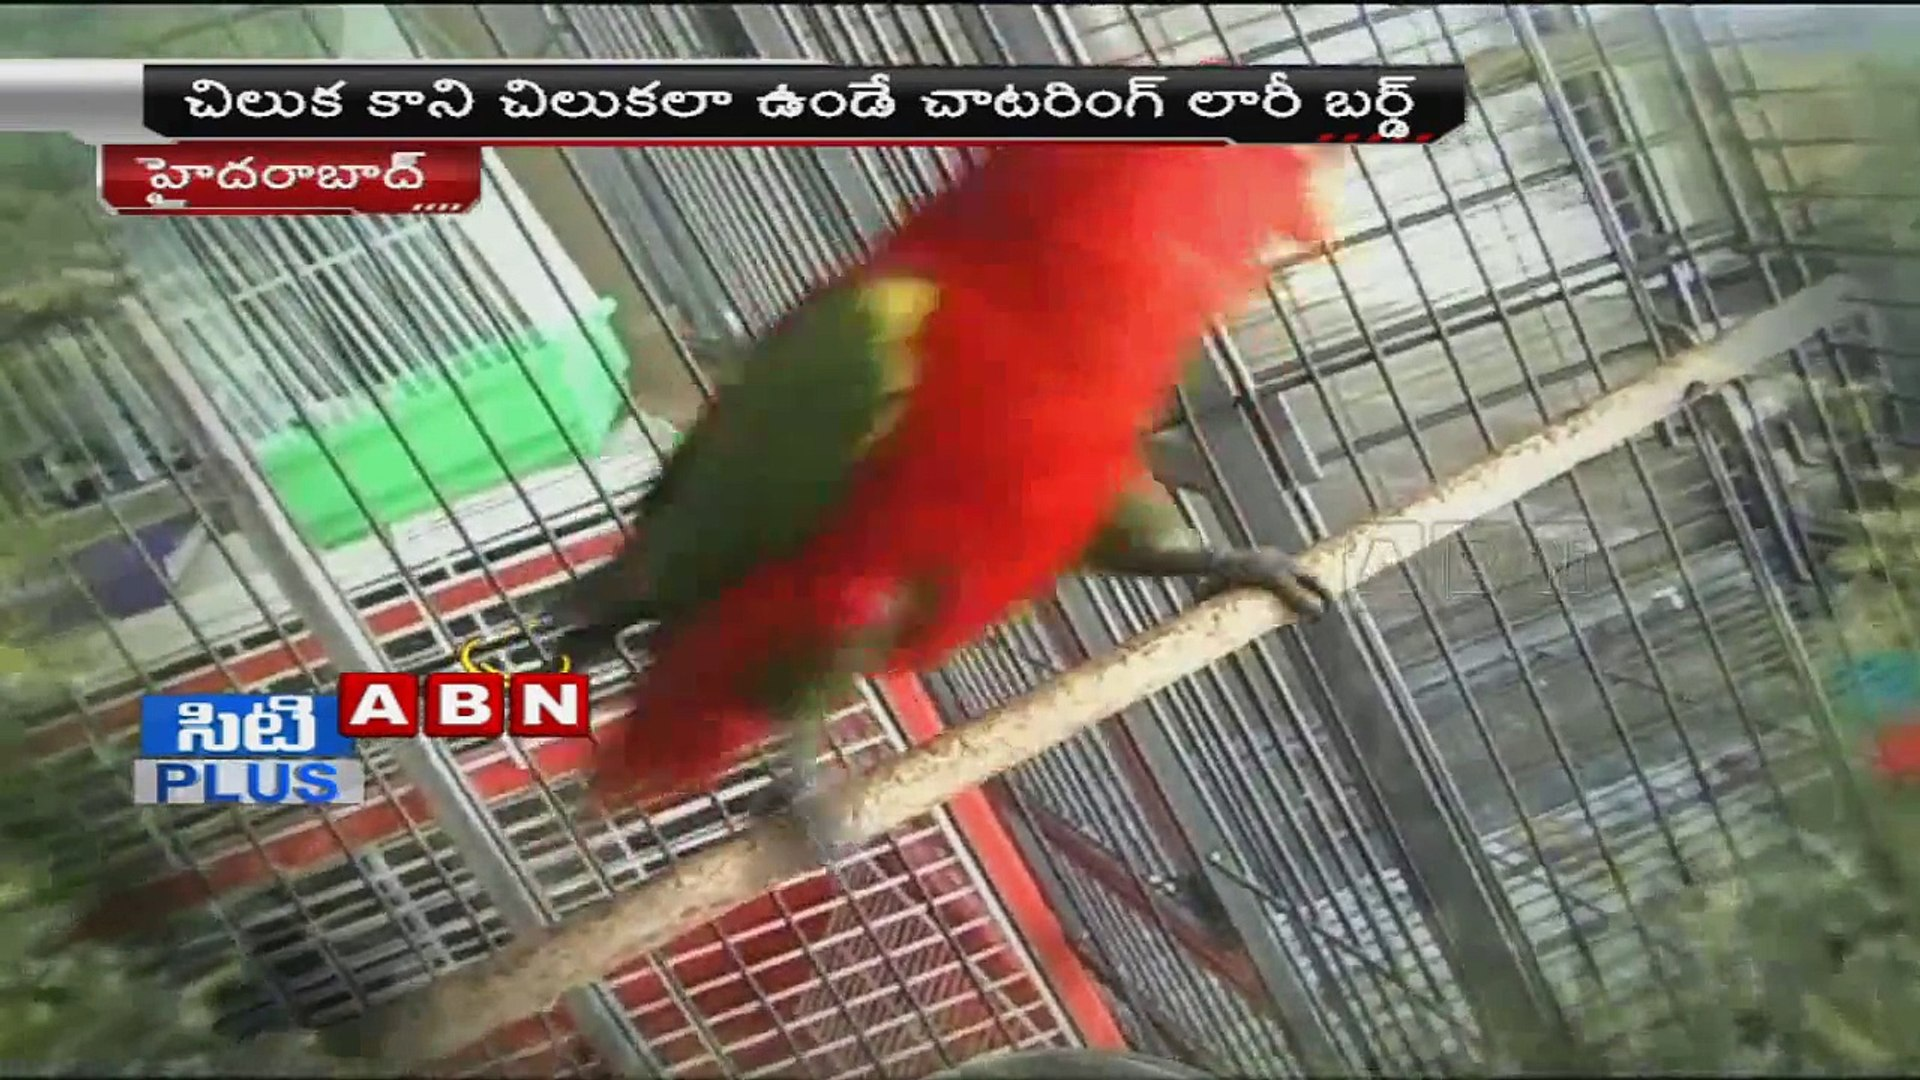 Talking parrots for sale in Pets & Pet Care, Hyderabad (01 - 05 - 2015)